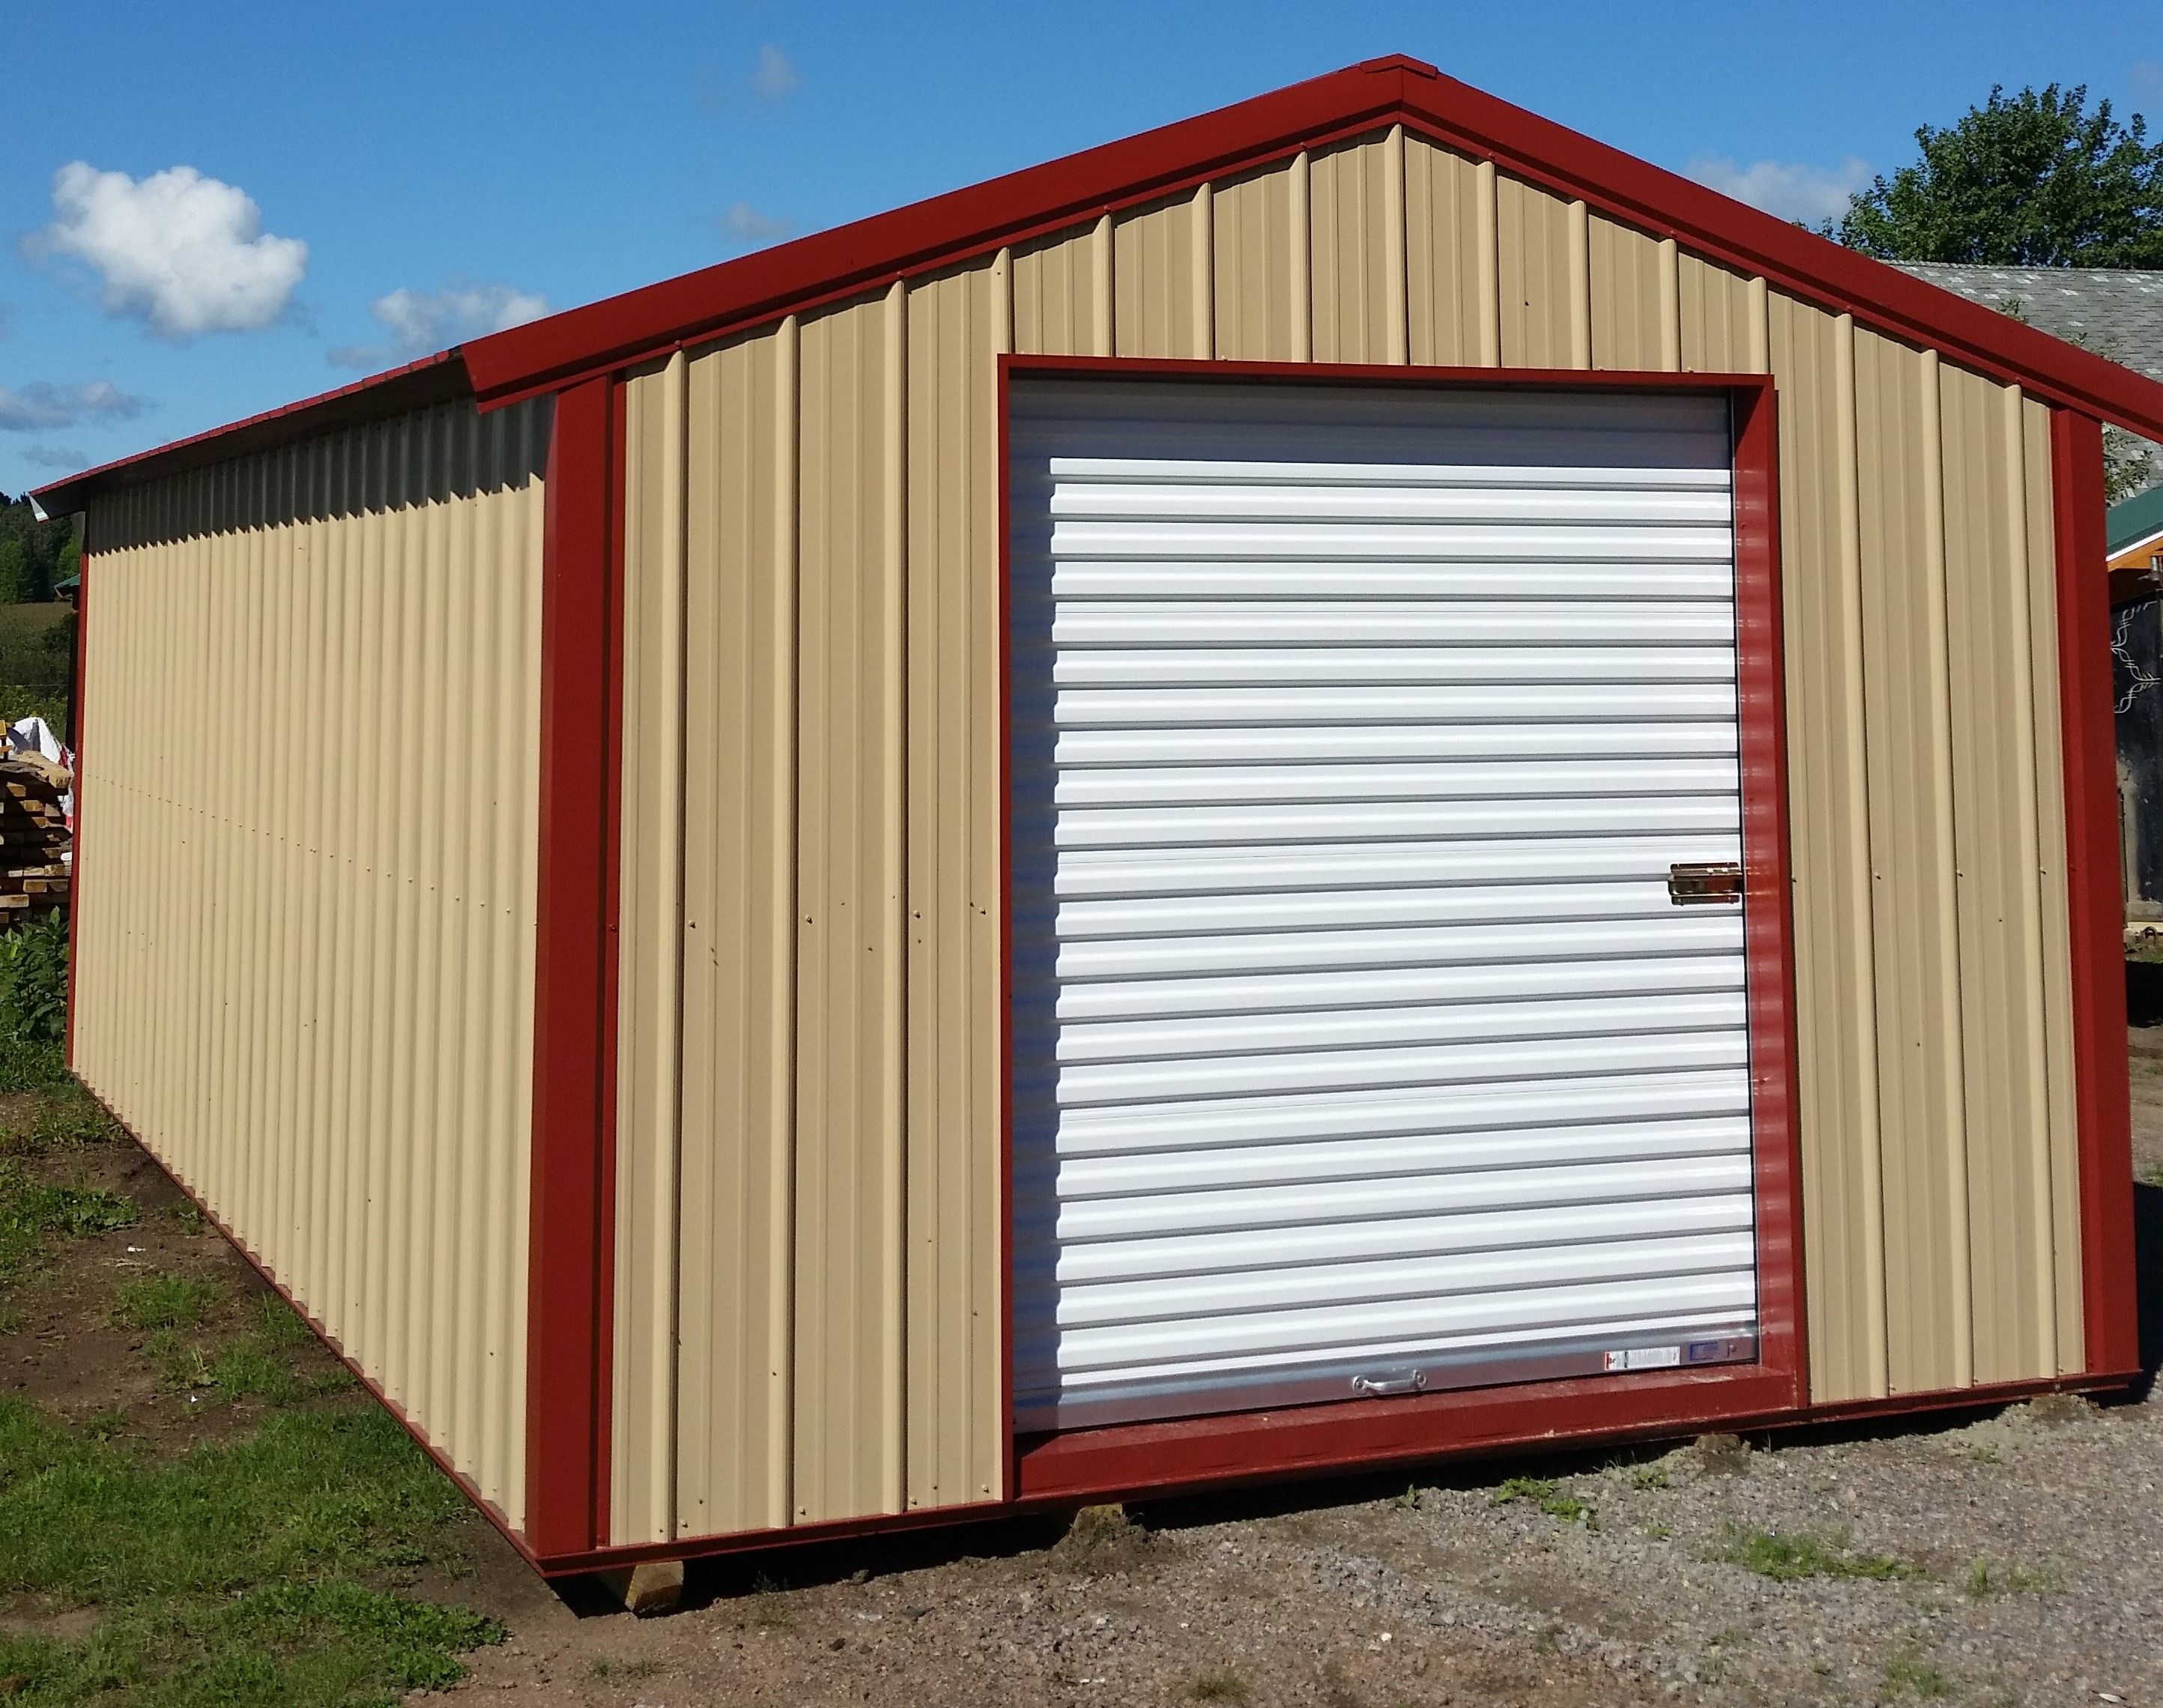 10x16 A Frame Shed Rawhide Steel Sides Rural Red Roof And Trim 6x7 Rollup Door 2600 House Exterior Shed Red Roof